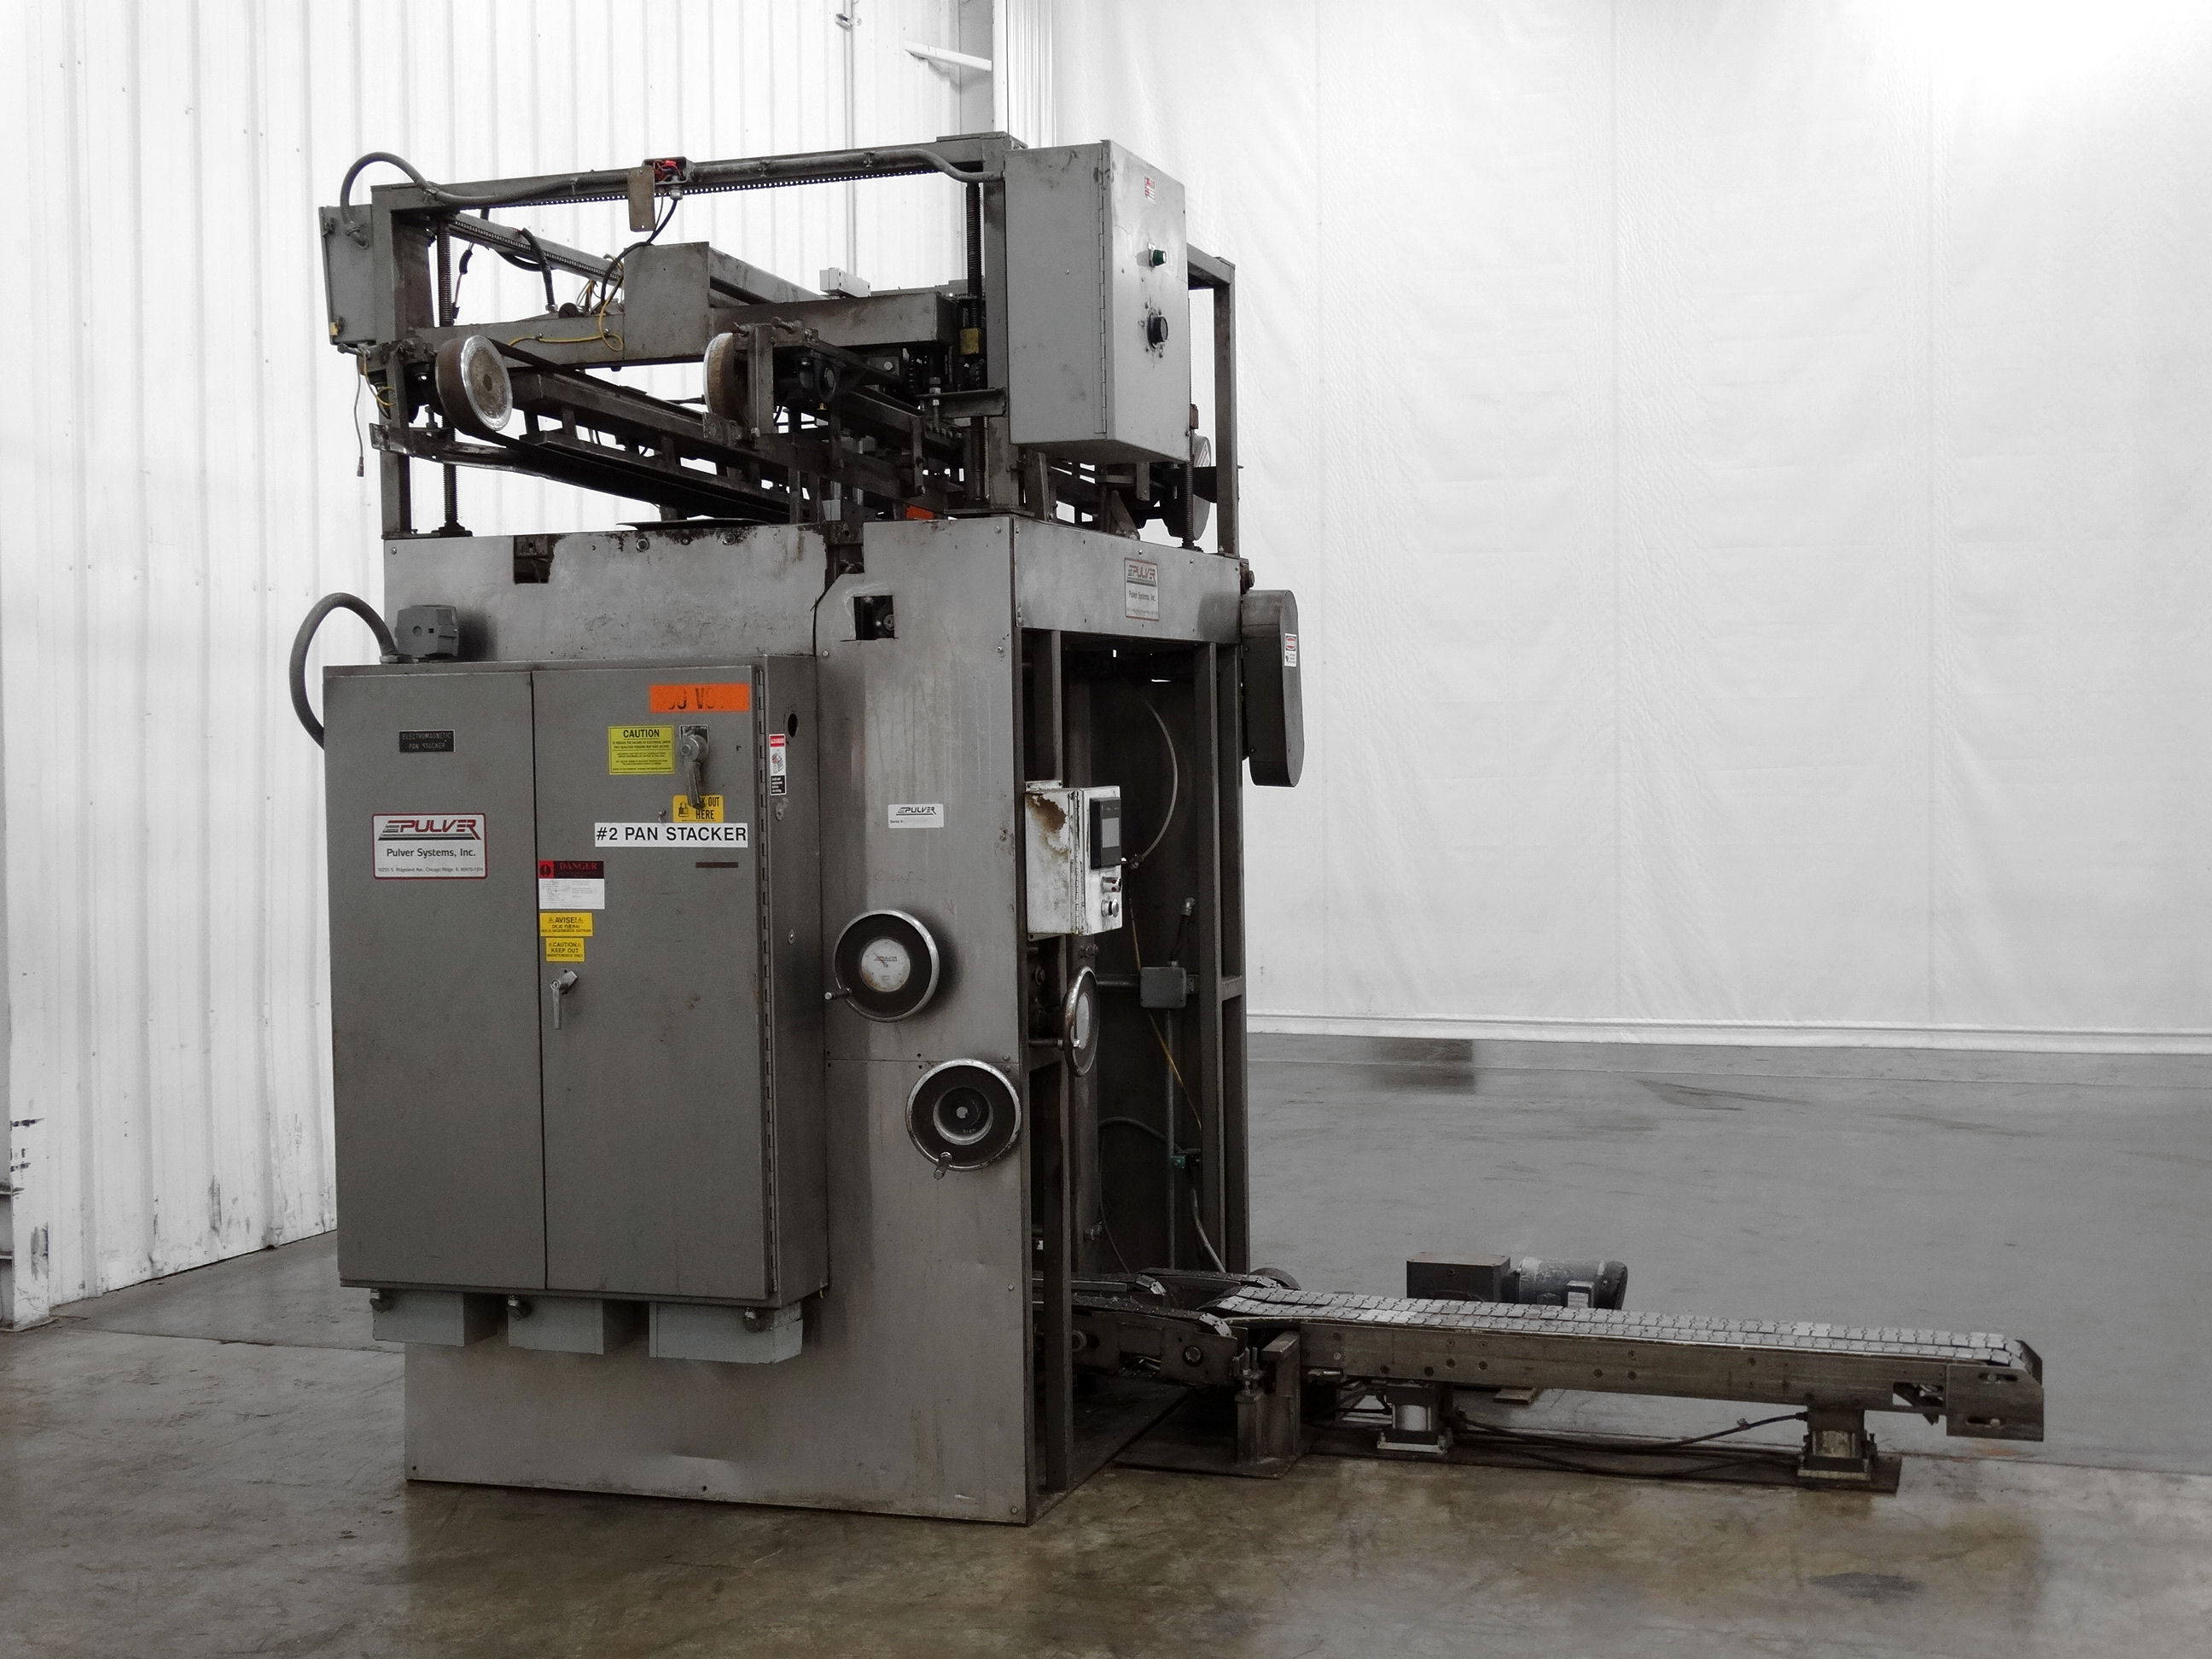 Pulver Stainless Steel Pan Stacker B4409 - Image 5 of 11